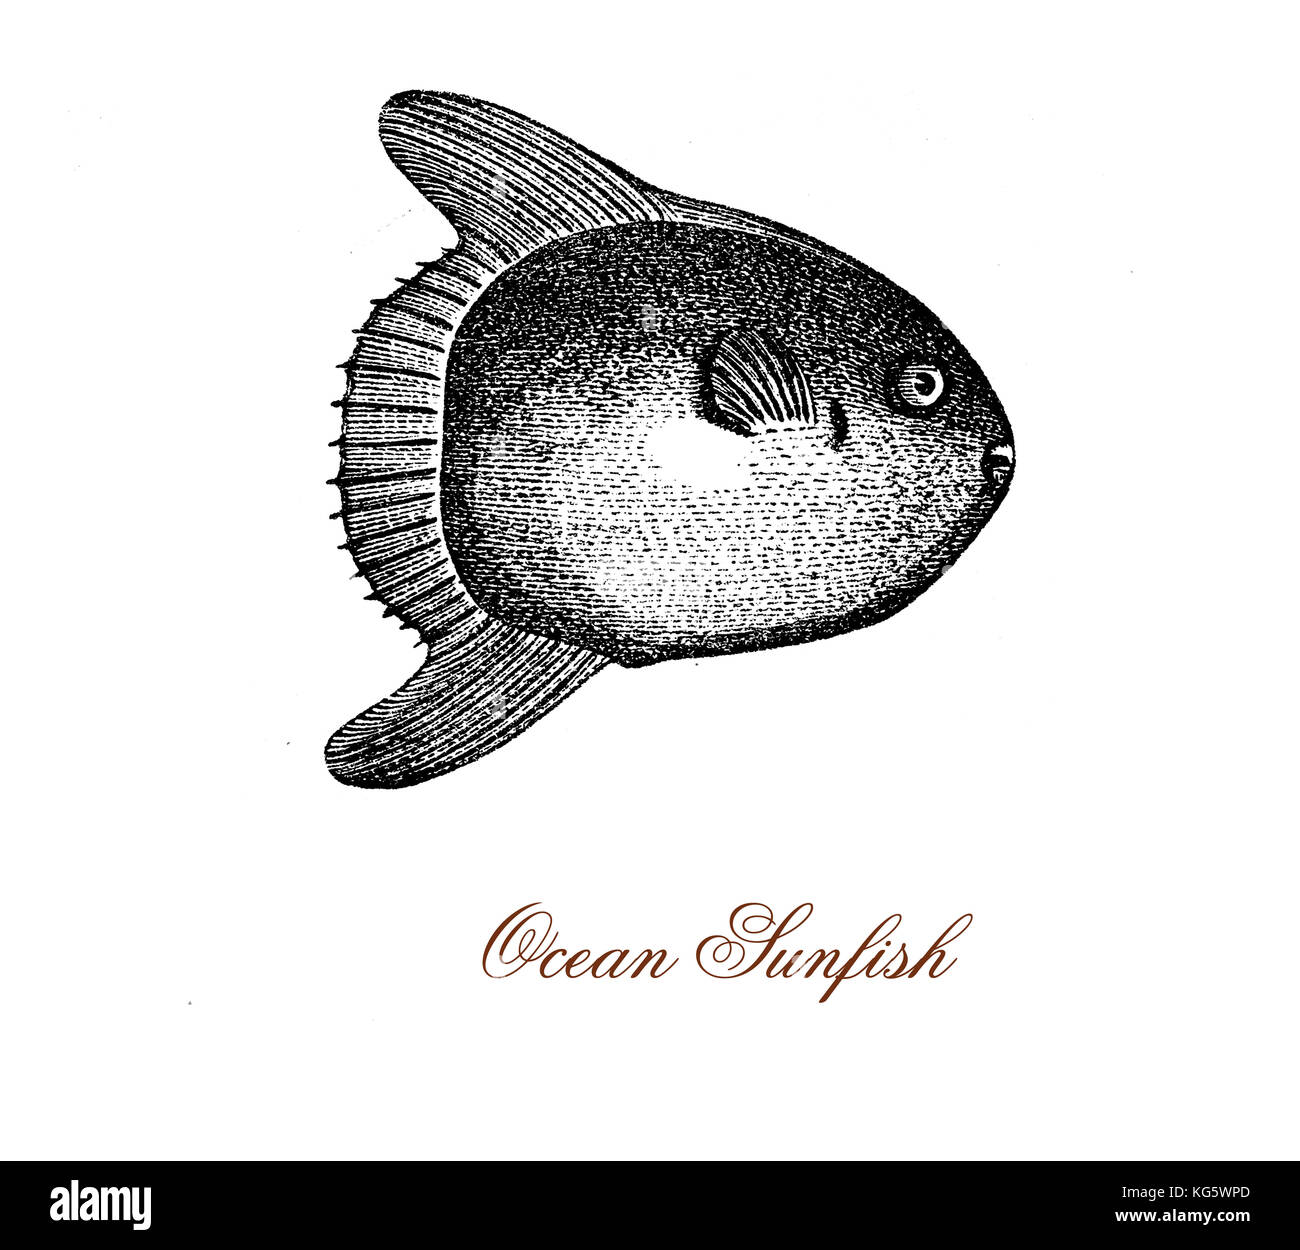 vintage engraving of ocean sunfish or common mola, bony fish native of tropical waters.It resembles a fish head - Stock Image